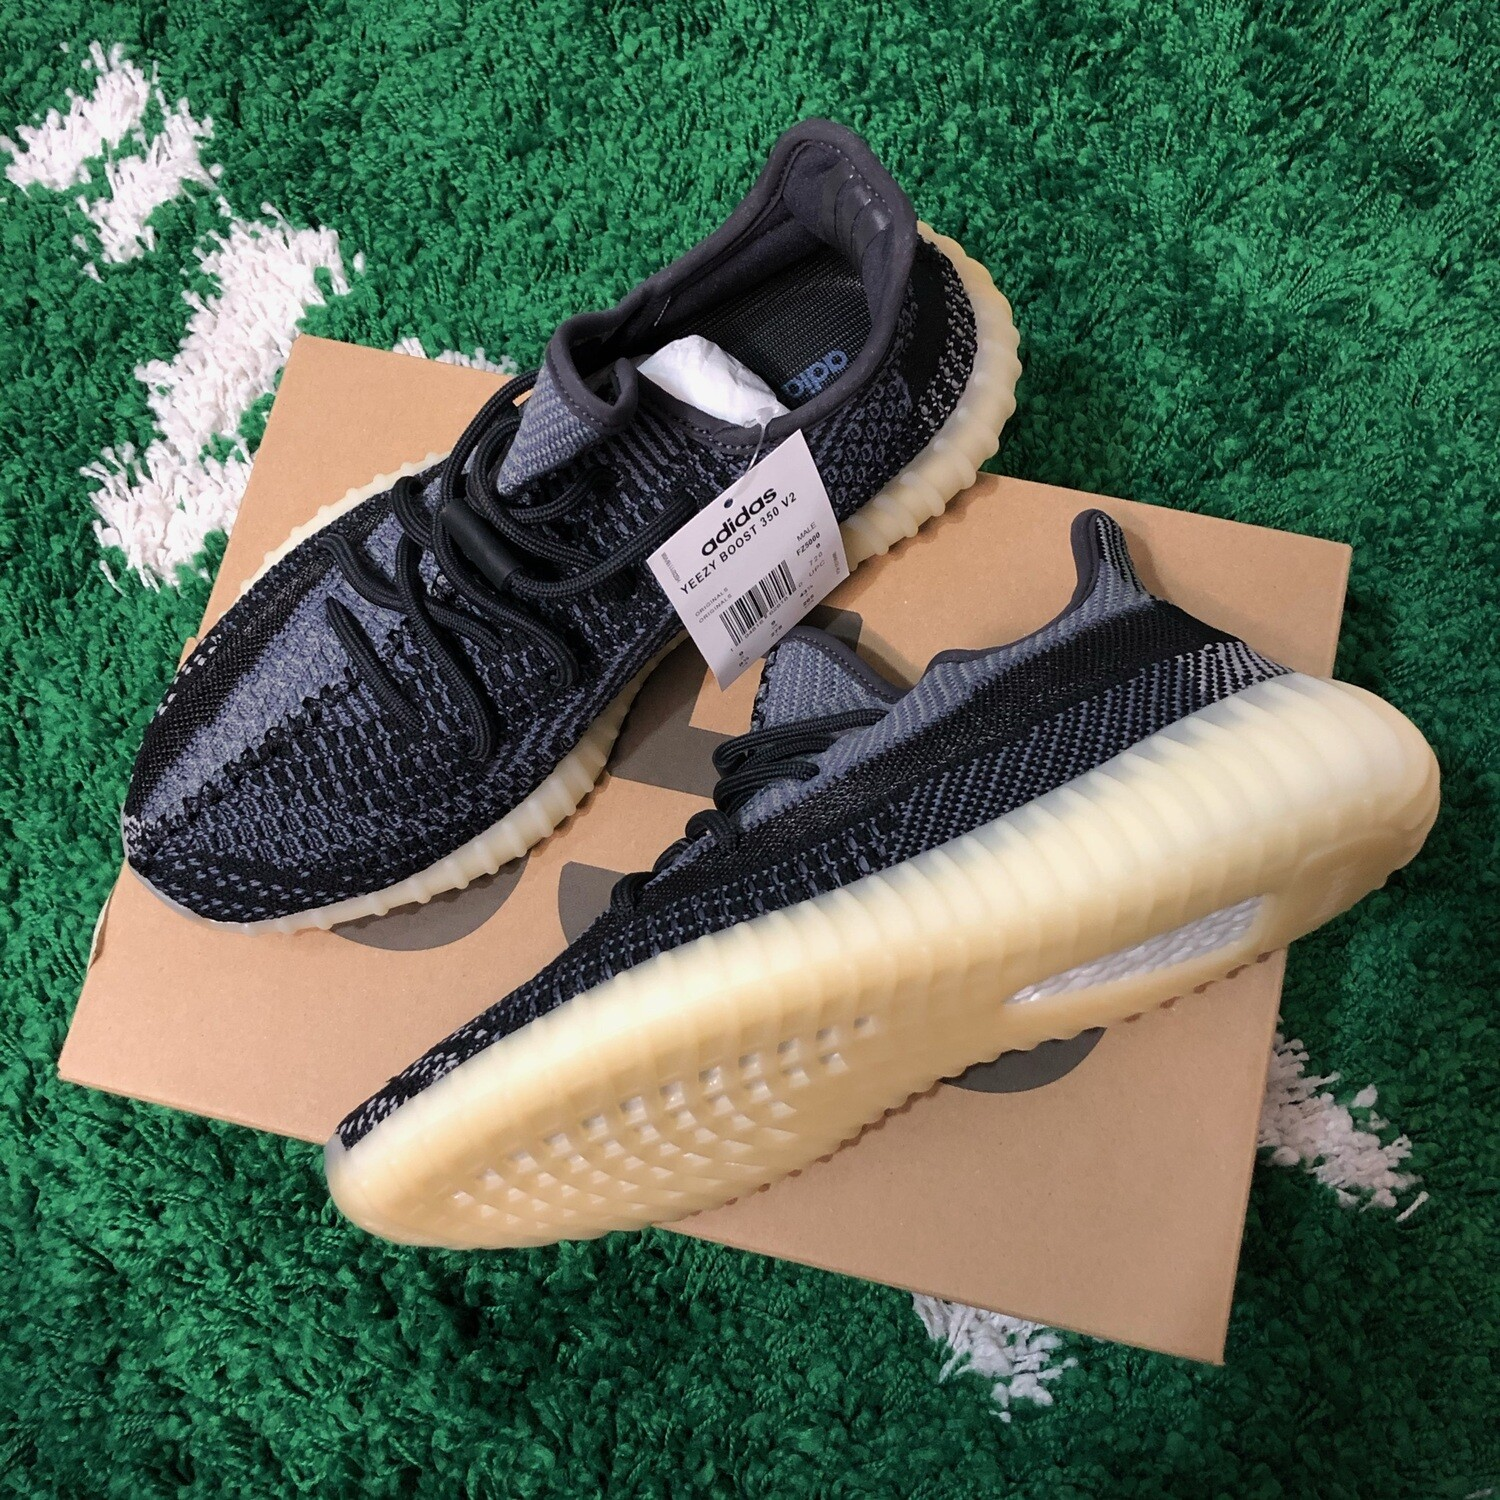 Adidas Yeezy Boost 350 V2 Carbon Size 9